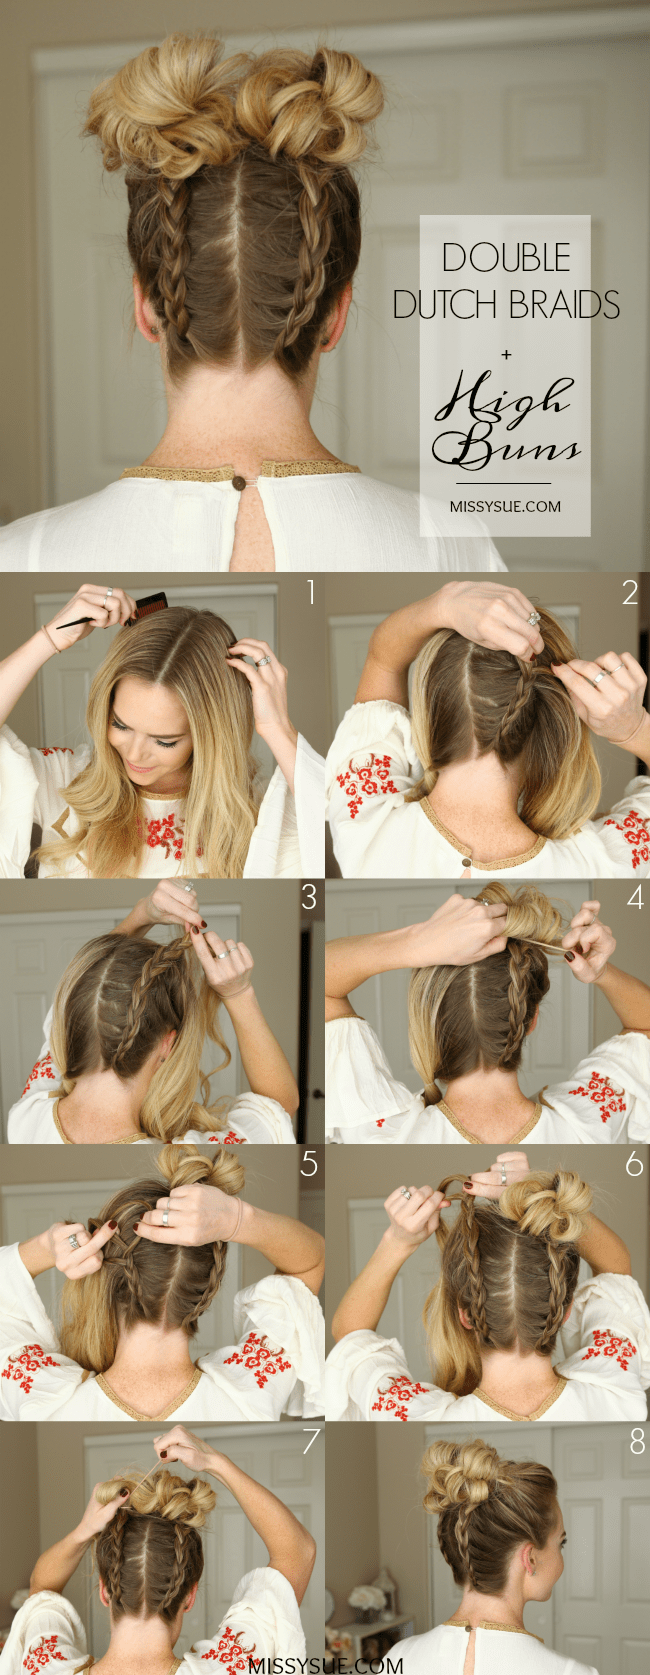 Double Dutch Braid High Buns Hair Tutorial